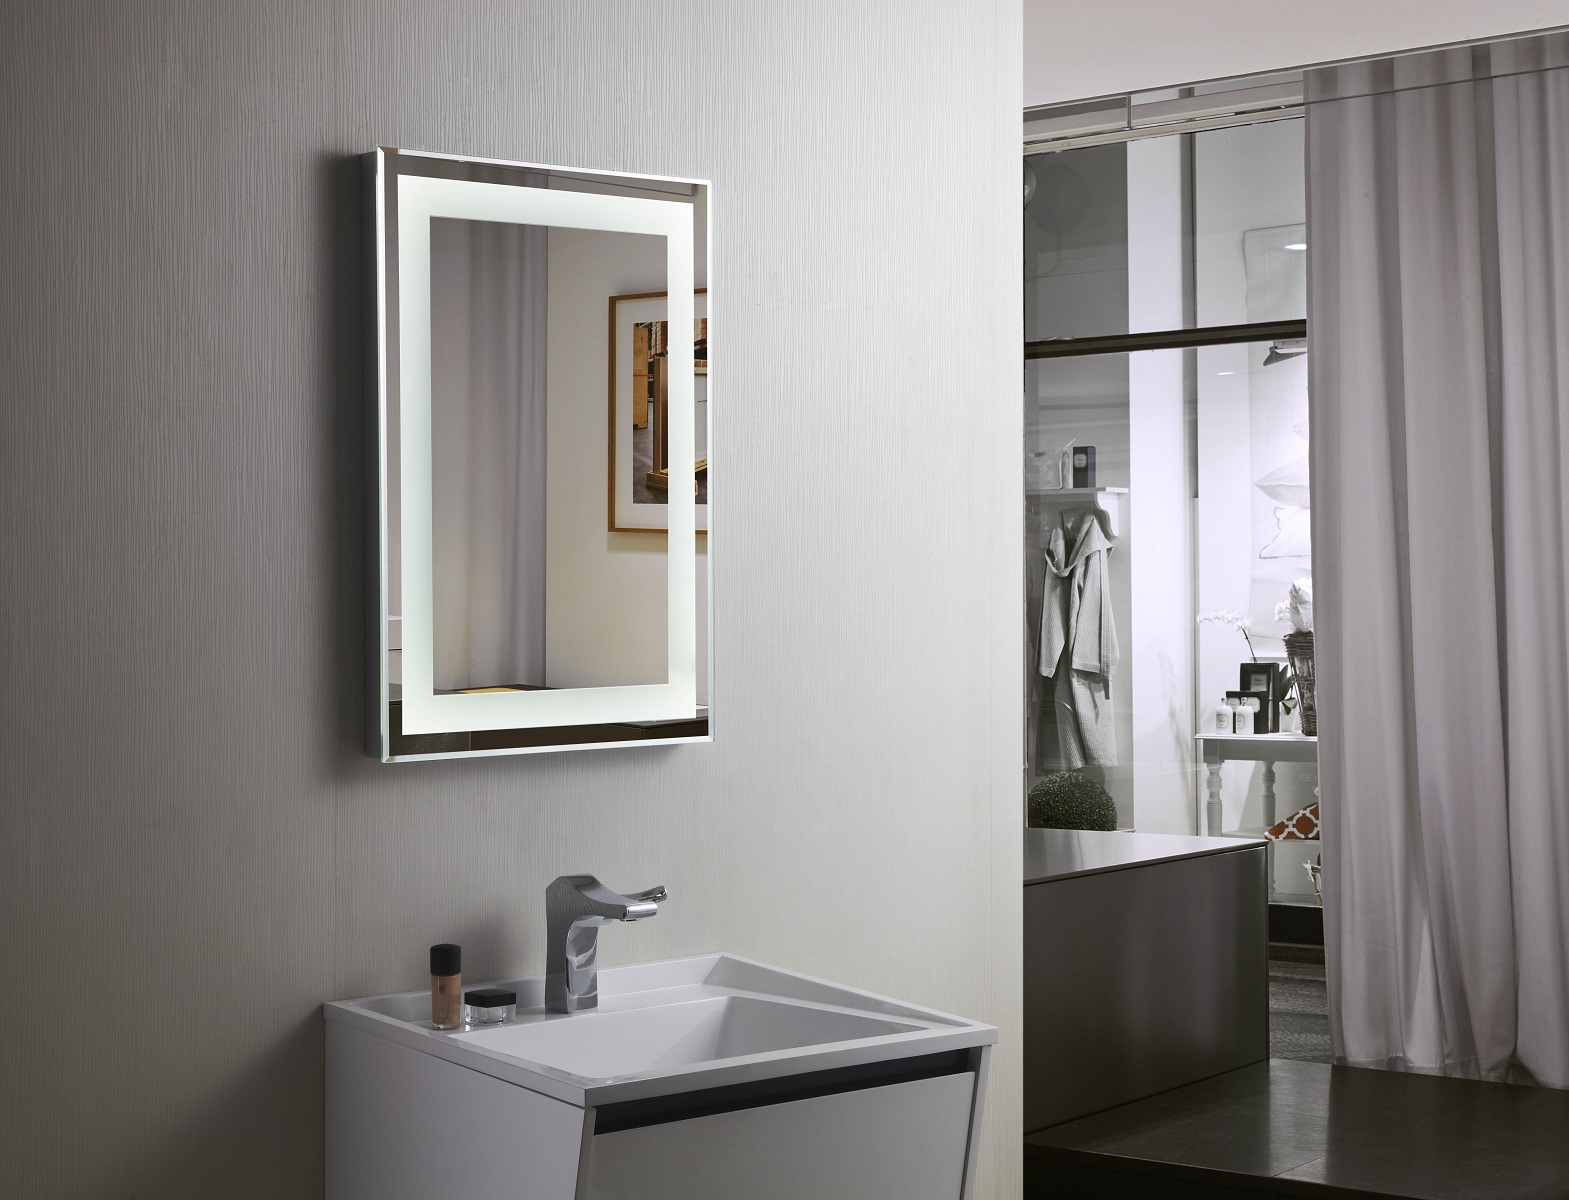 Bathroom mirror lighting led with brilliant inspirational for Lights for bathroom mirror